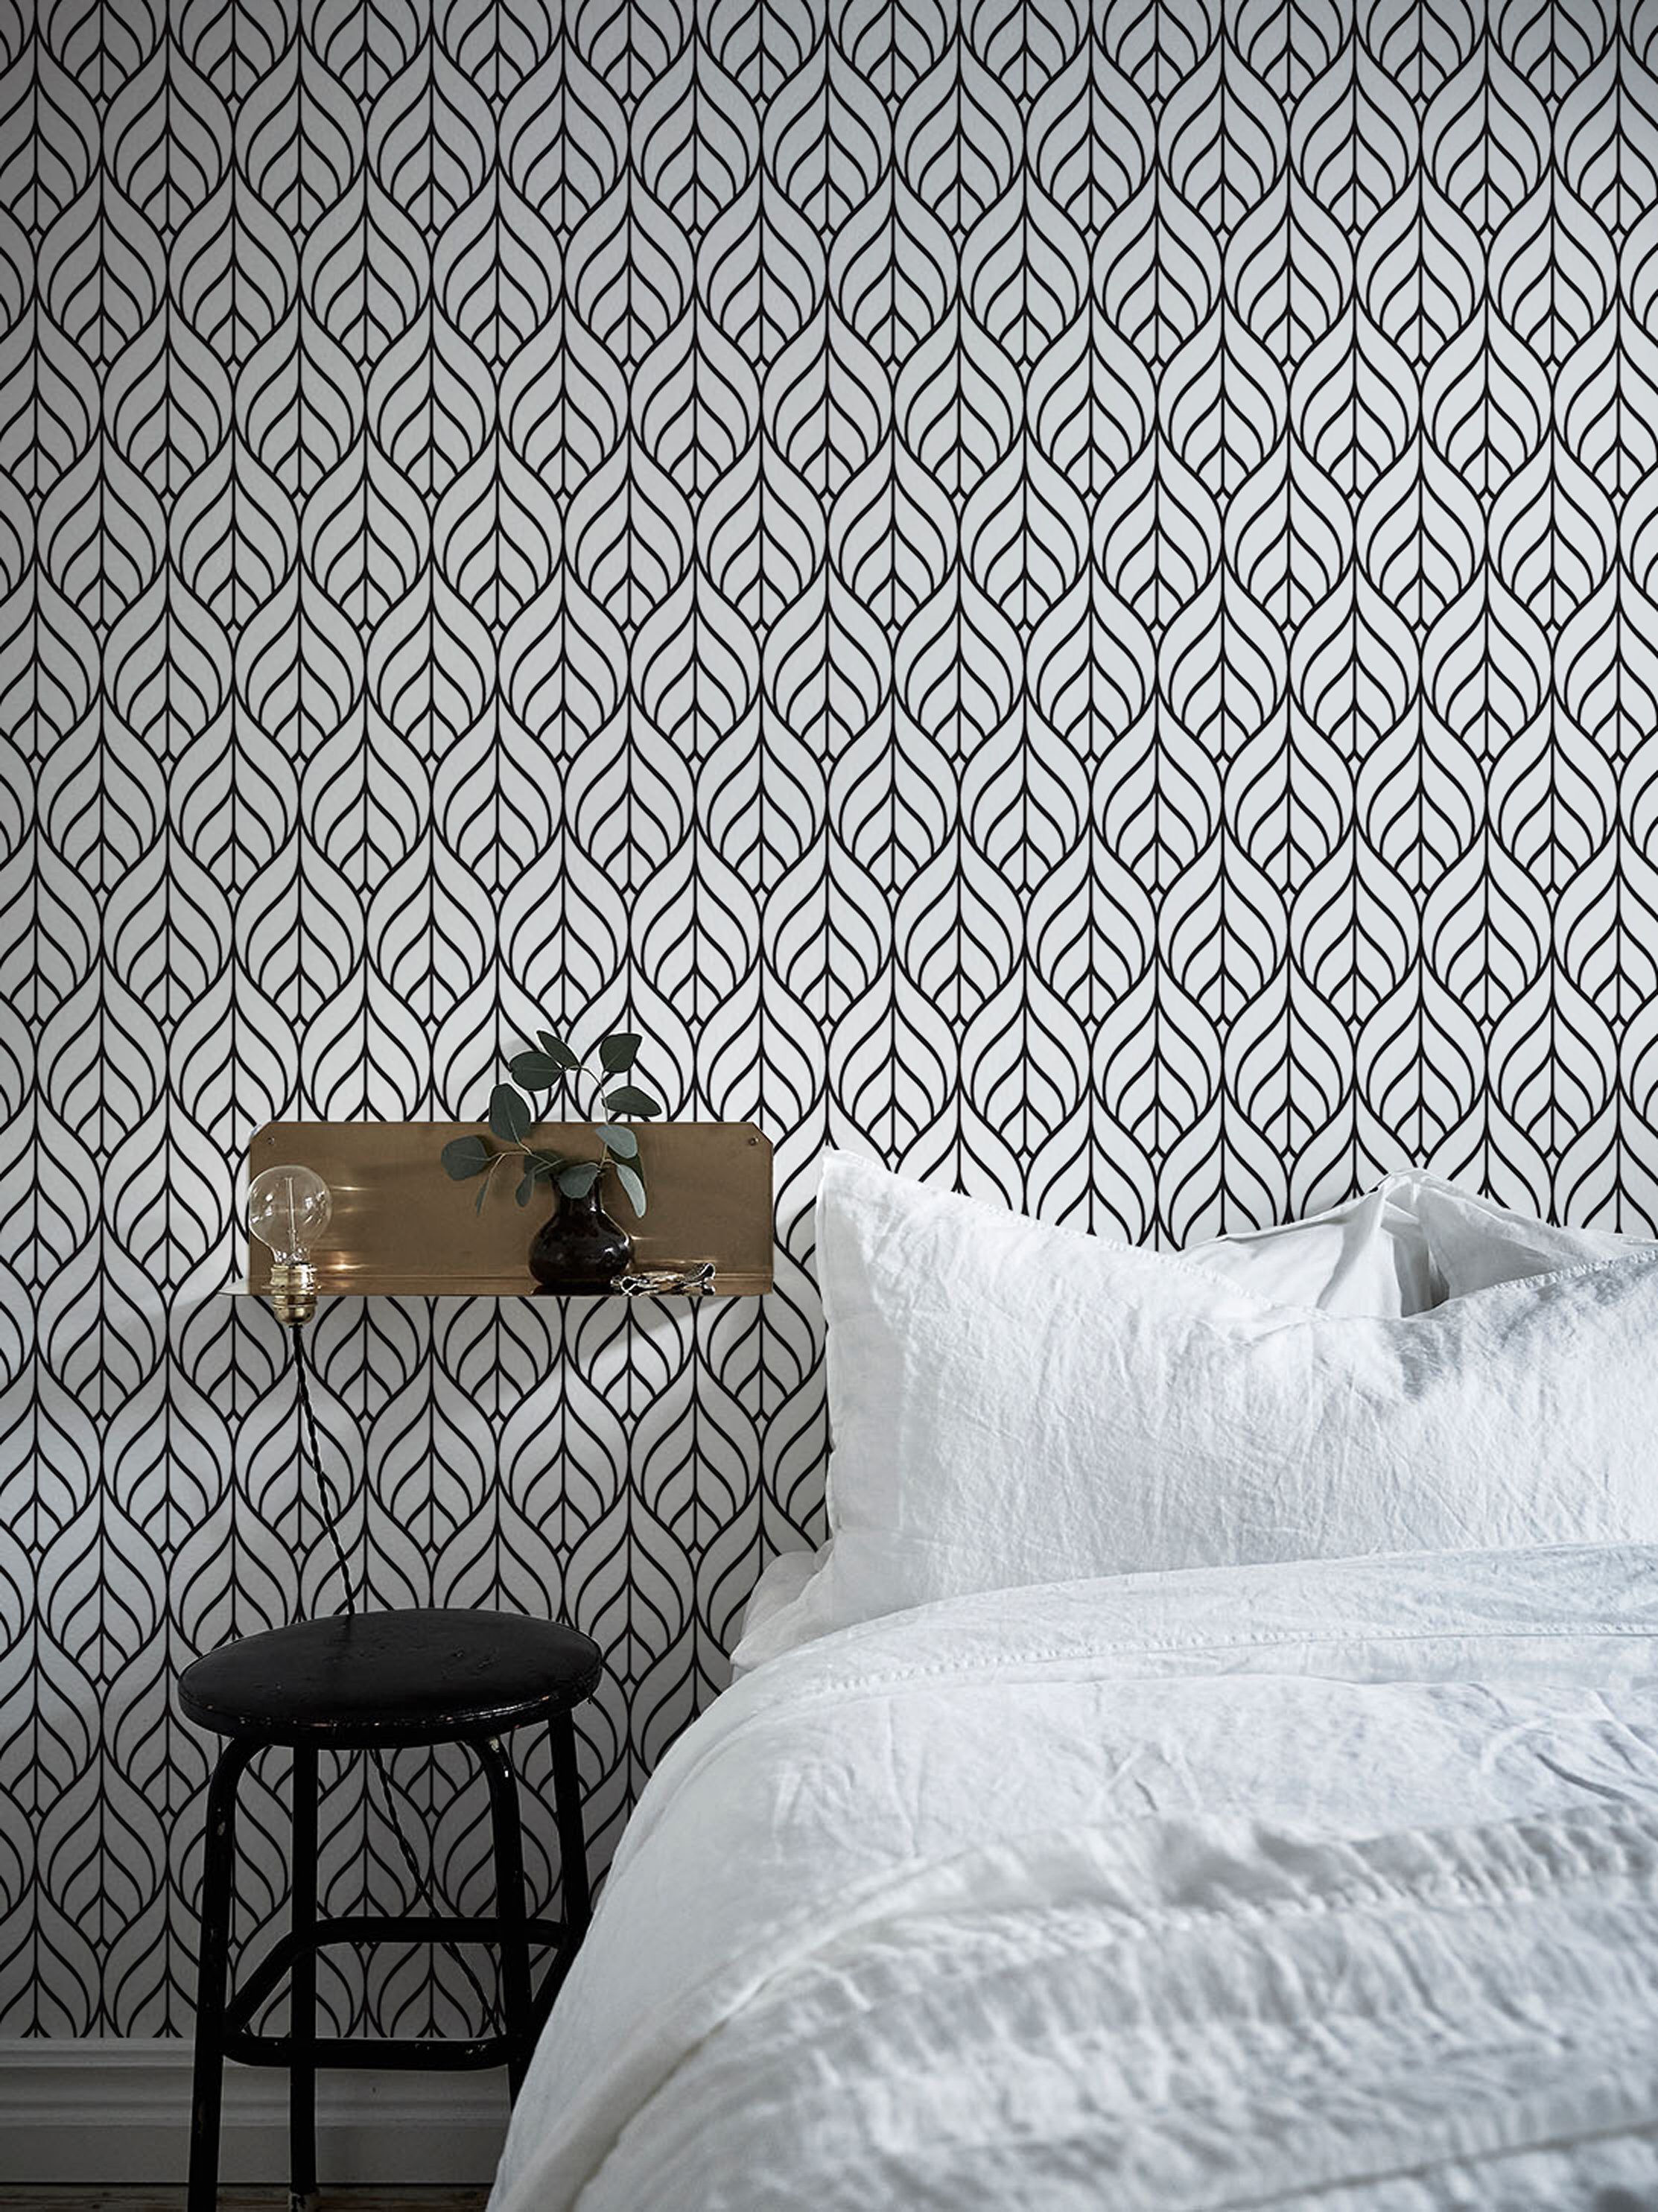 Removable Wallpaper Peel And Stick Wallpaper Wall Paper Wall Etsy Removable Wallpaper Temporary Wallpaper Townhouse Interior